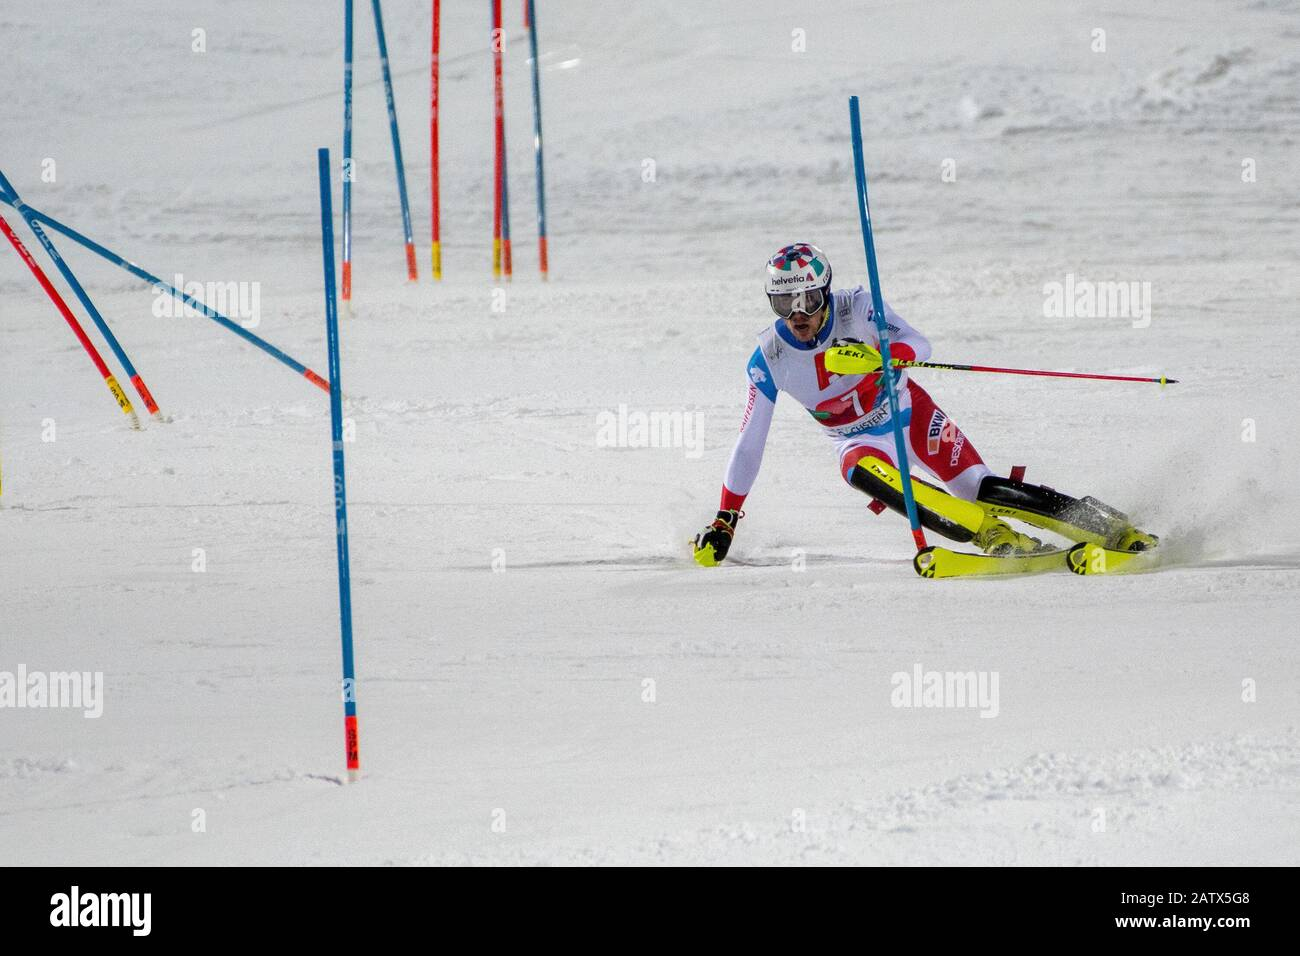 Daniel Yule Of Switzerland At First Round The Nightrace Schladming On January 28 2020 In Schladming Photo By Thomas Reiner Espa Images Stock Photo Alamy